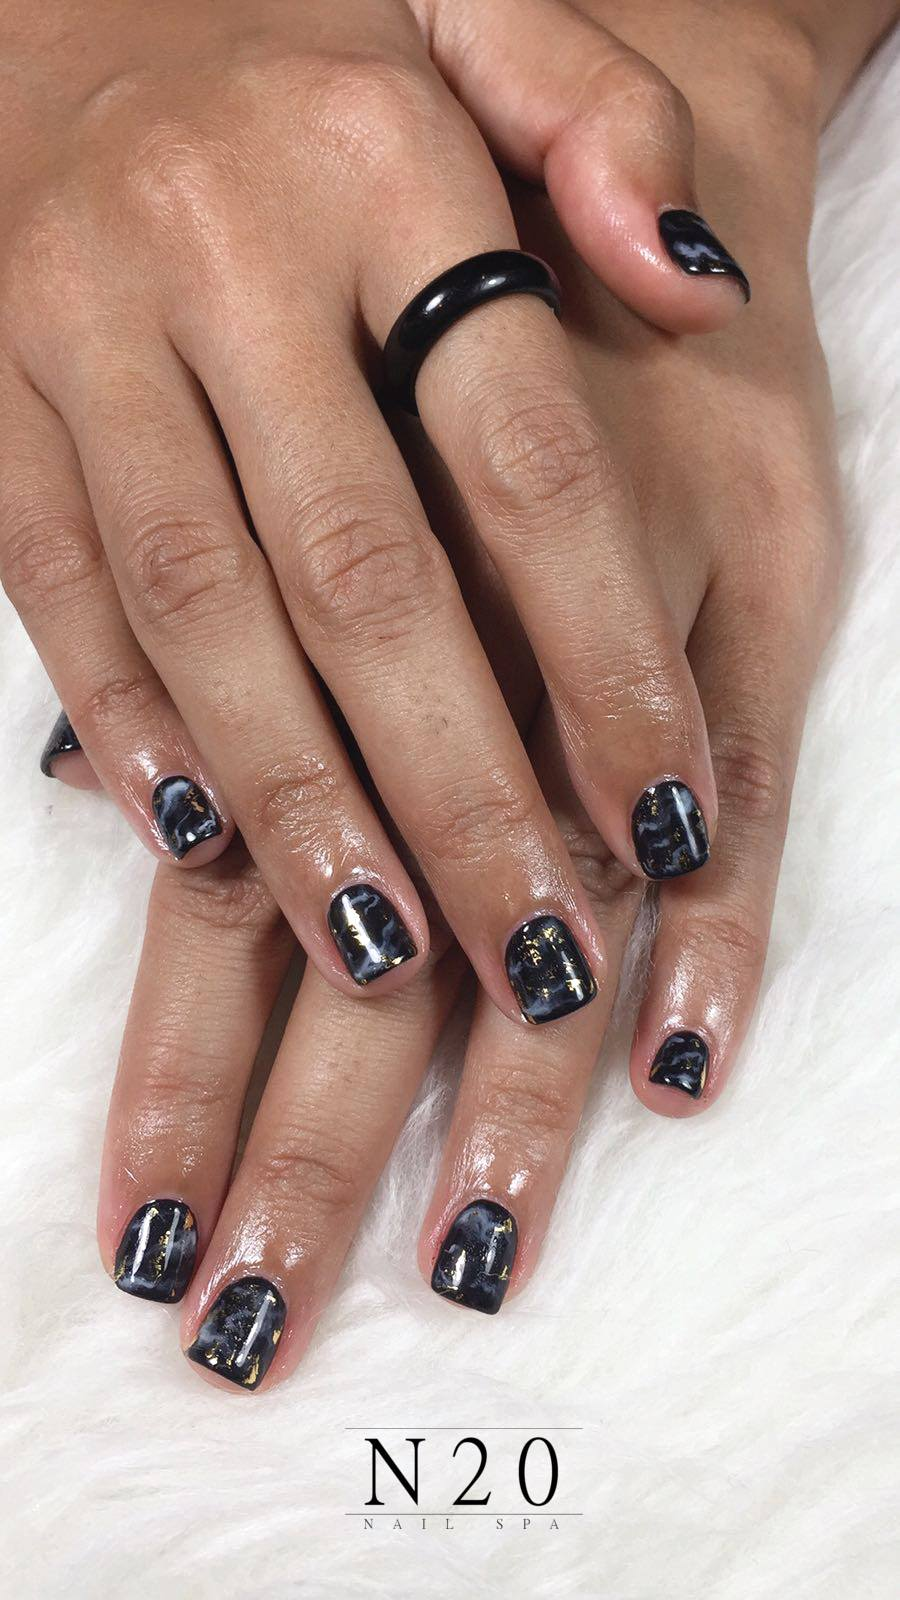 Black marble look manicure nail art with touch of gold - N20 Nail Spa